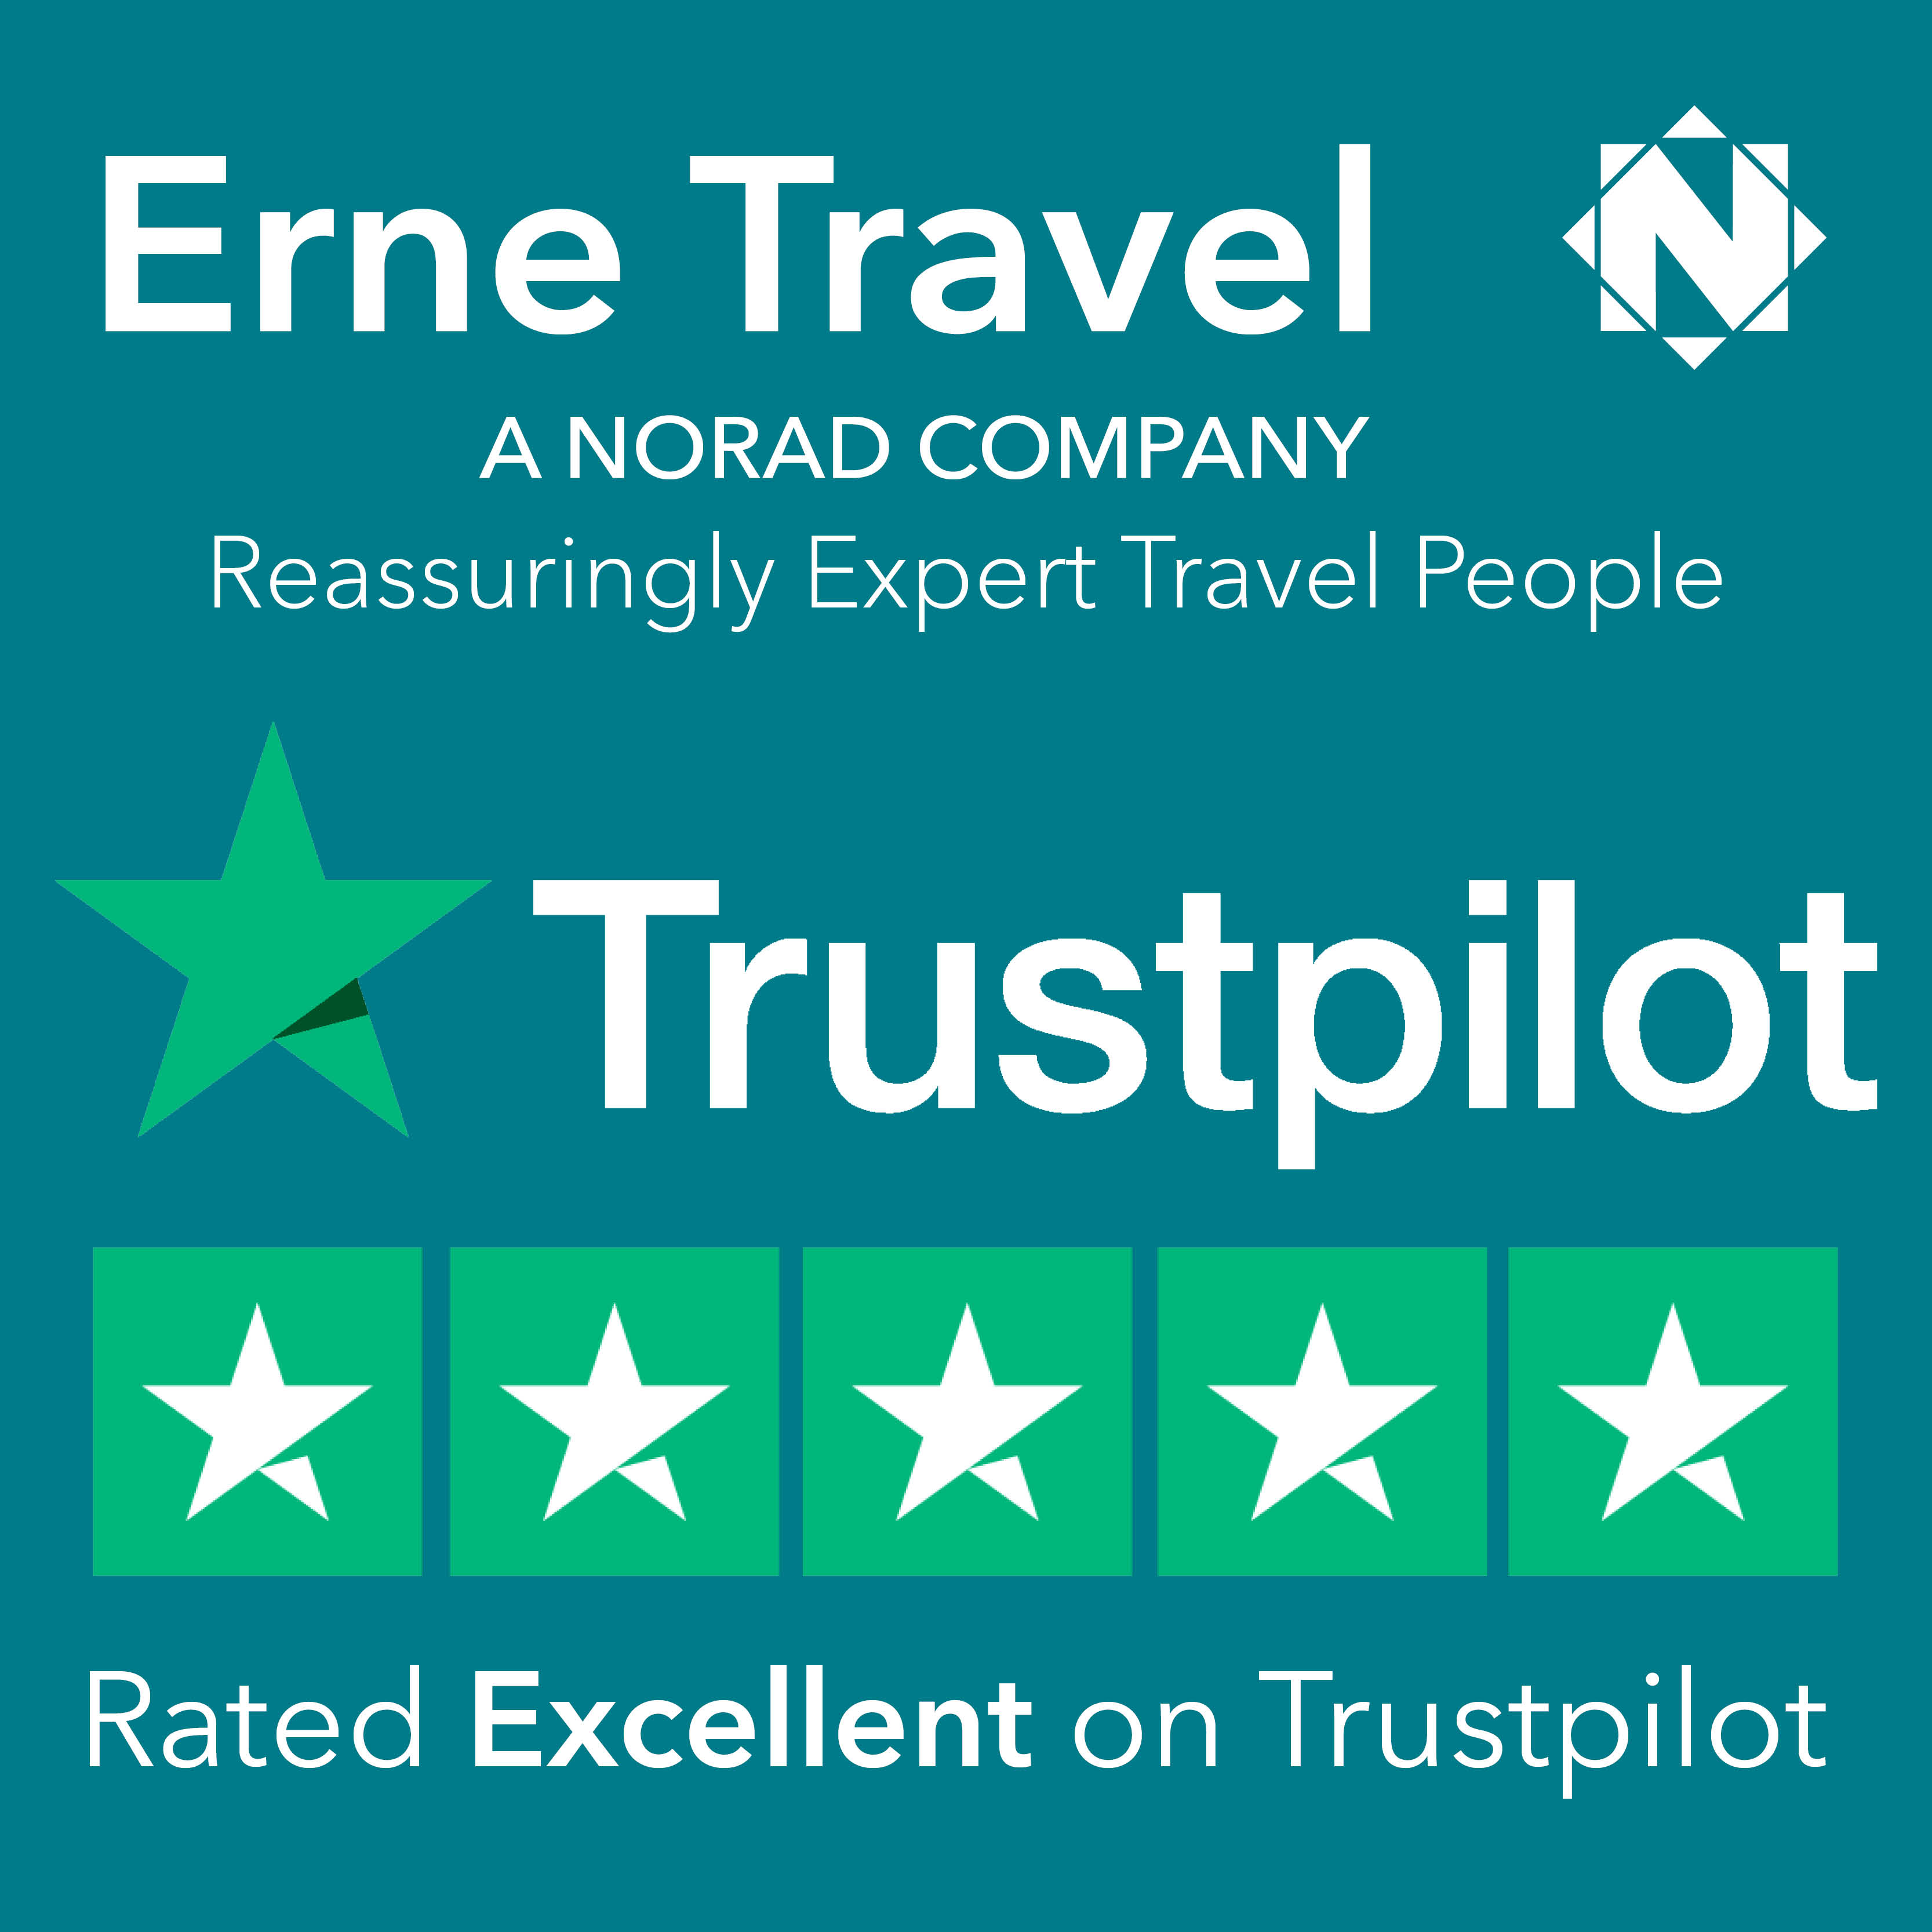 Erne Travel Reassuringly Expert Travel People